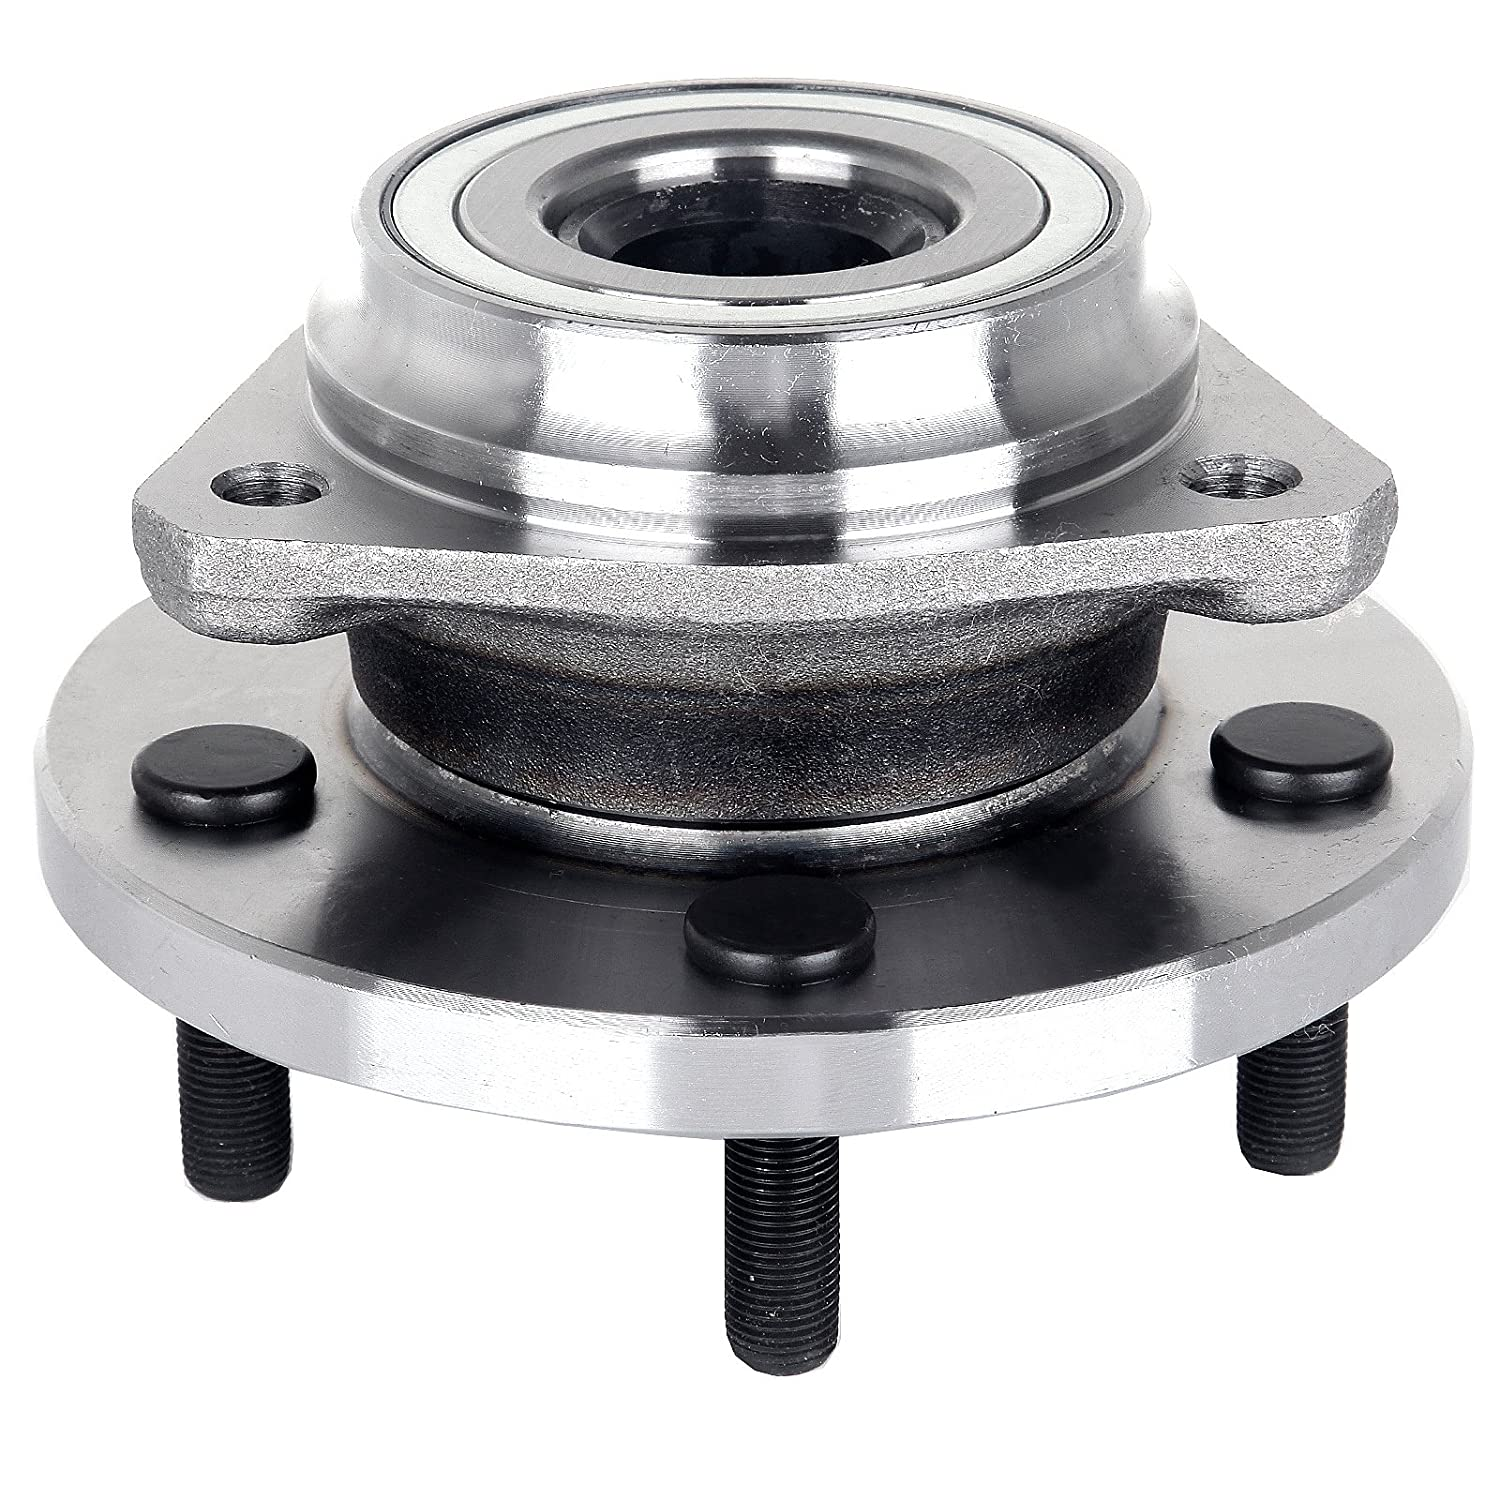 OCPTY Wheel Bearing Hub 513159 Front Bearing Assembly 5 Lugs Replacement fit for 1999-2004 Jeep Grand Cherokee 051409-5209-1632488862